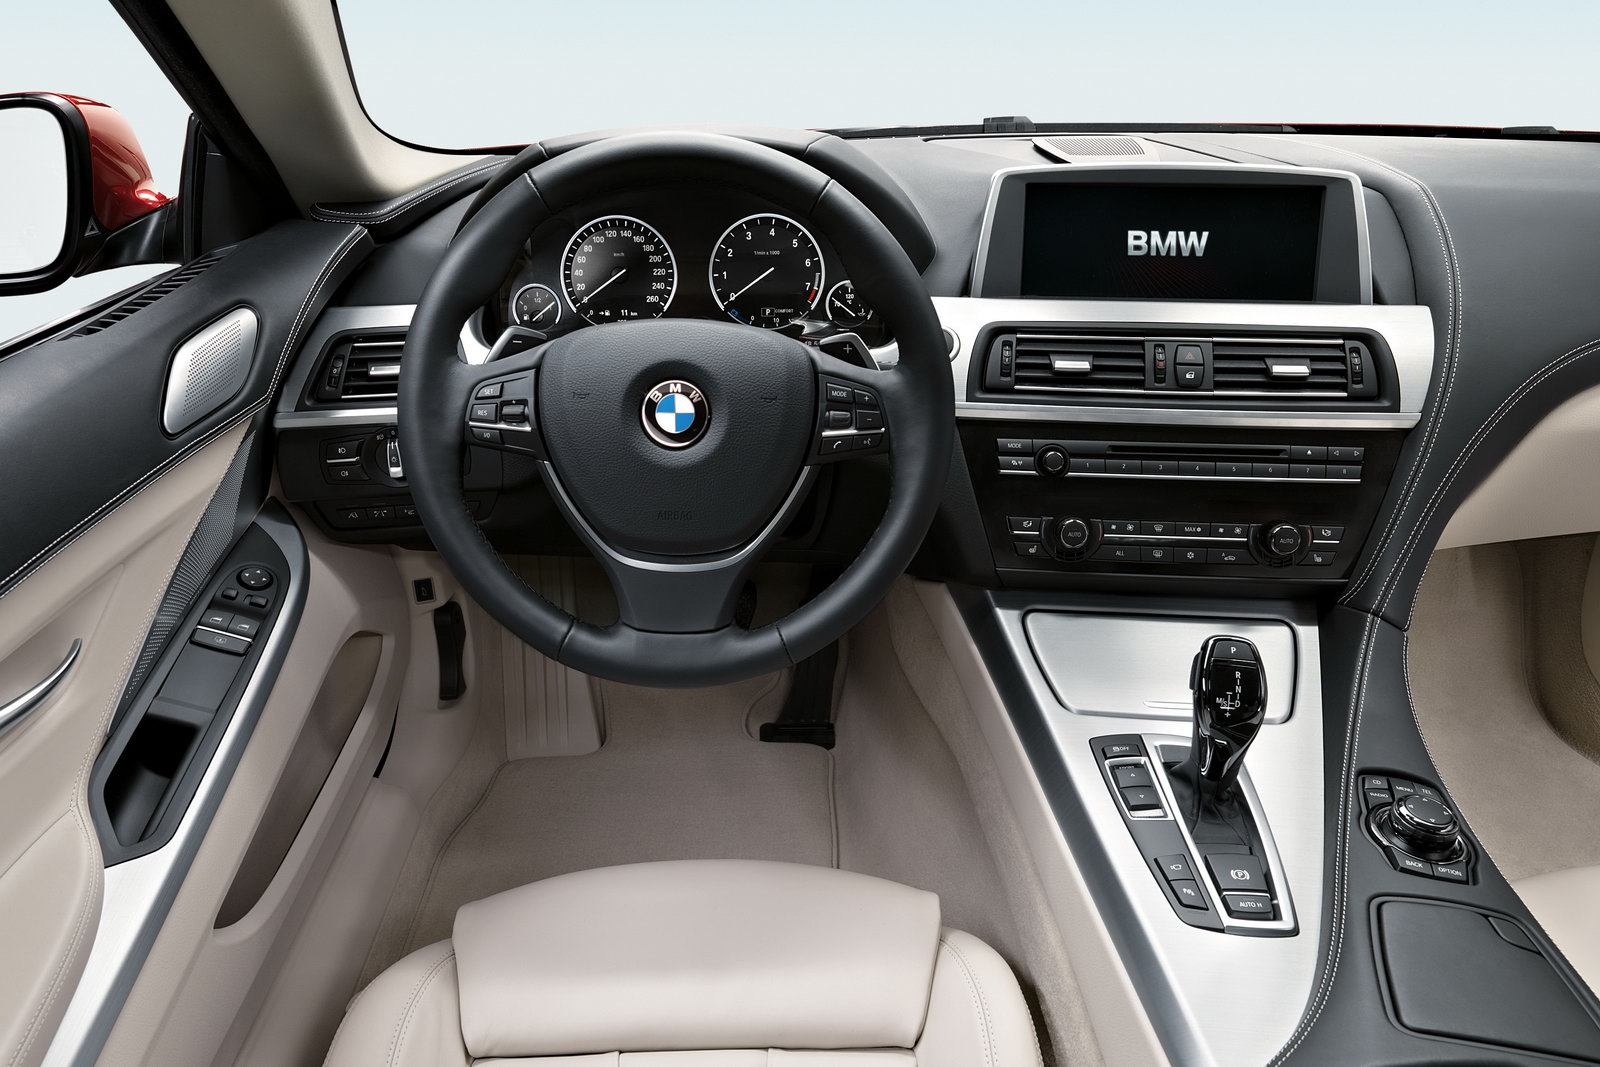 2012 BMW 6 Series Coupe 4 2012 BMW 6 Futuristic Coupe –Photos Made Available